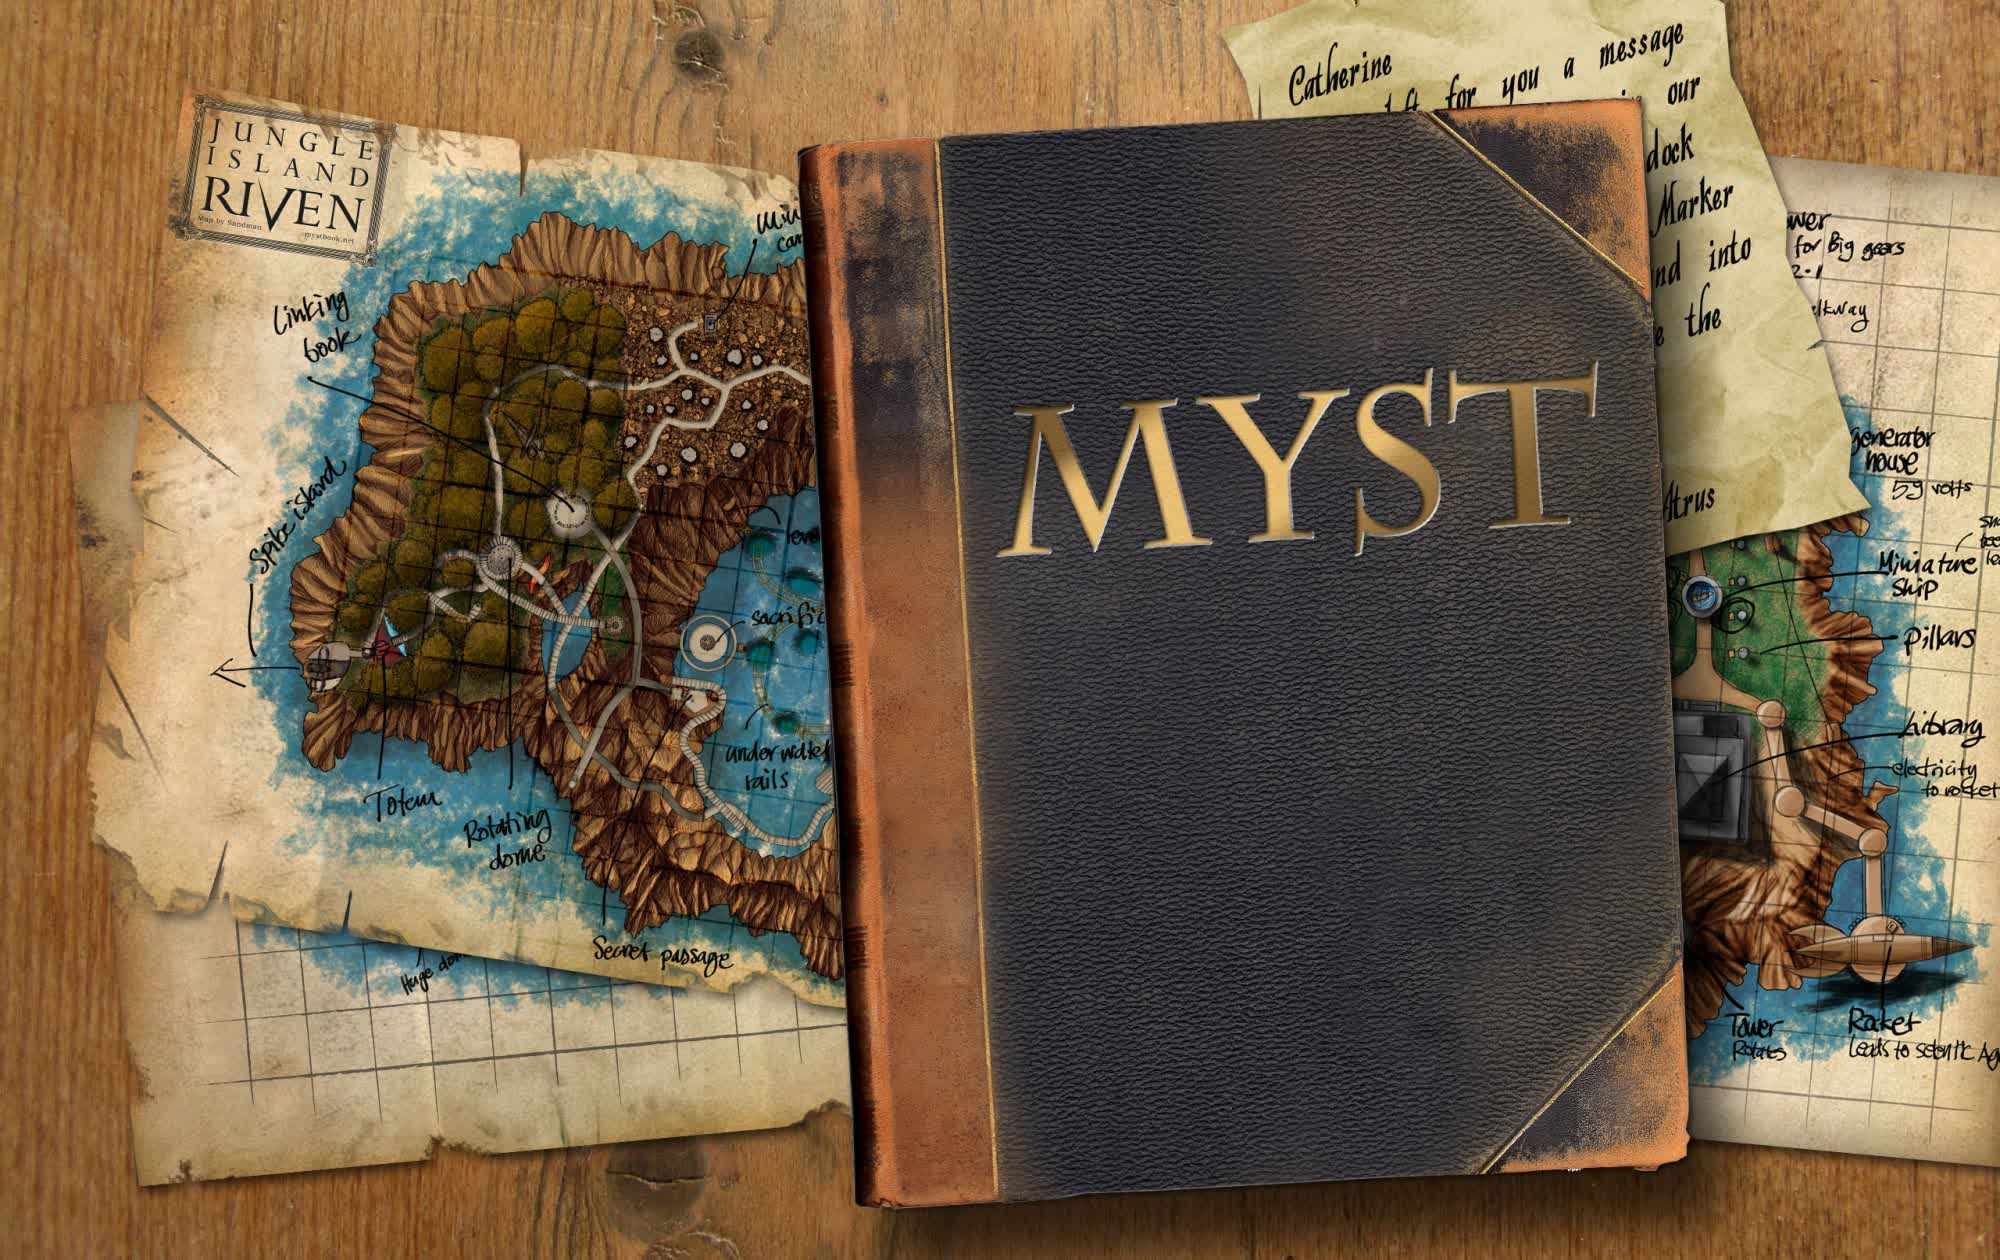 Myst is being reimagined for virtual reality